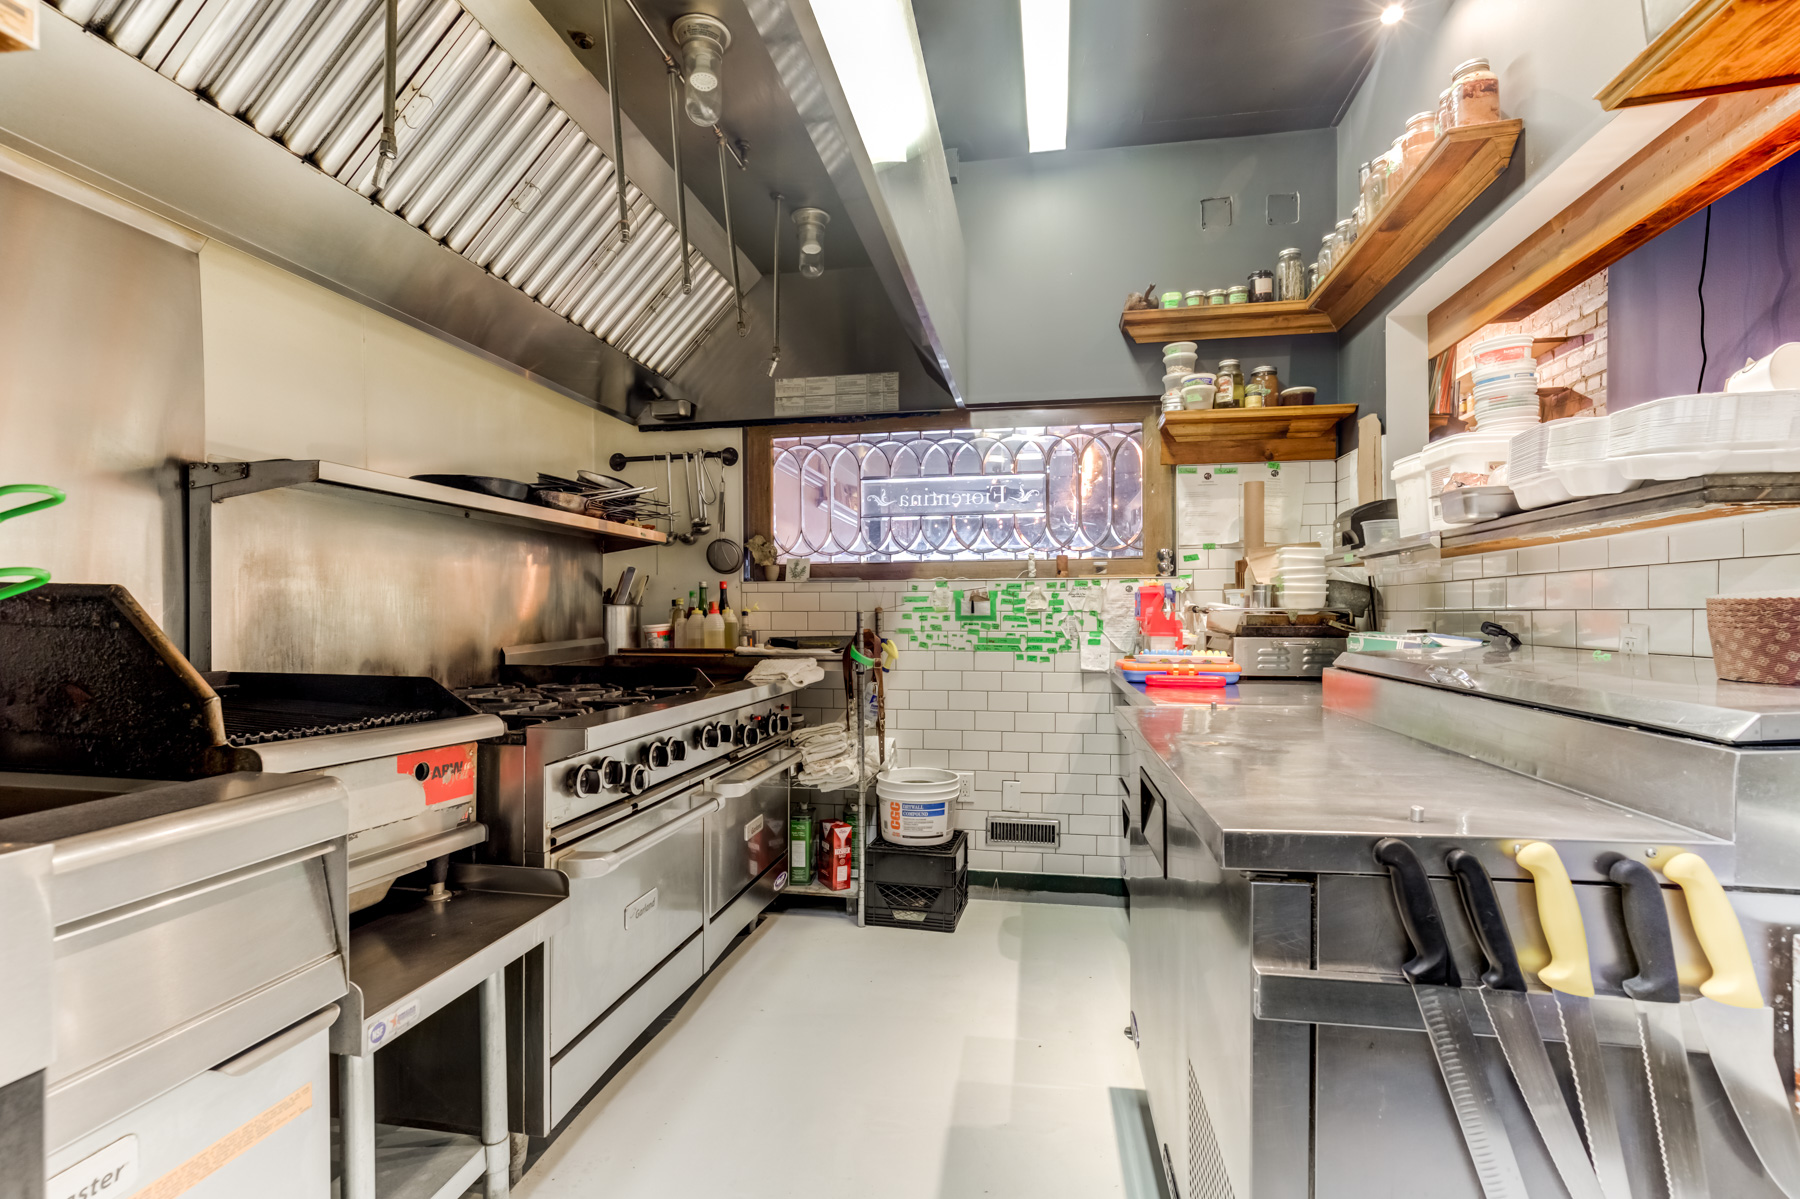 Restaurant kitchen with industrial stove.